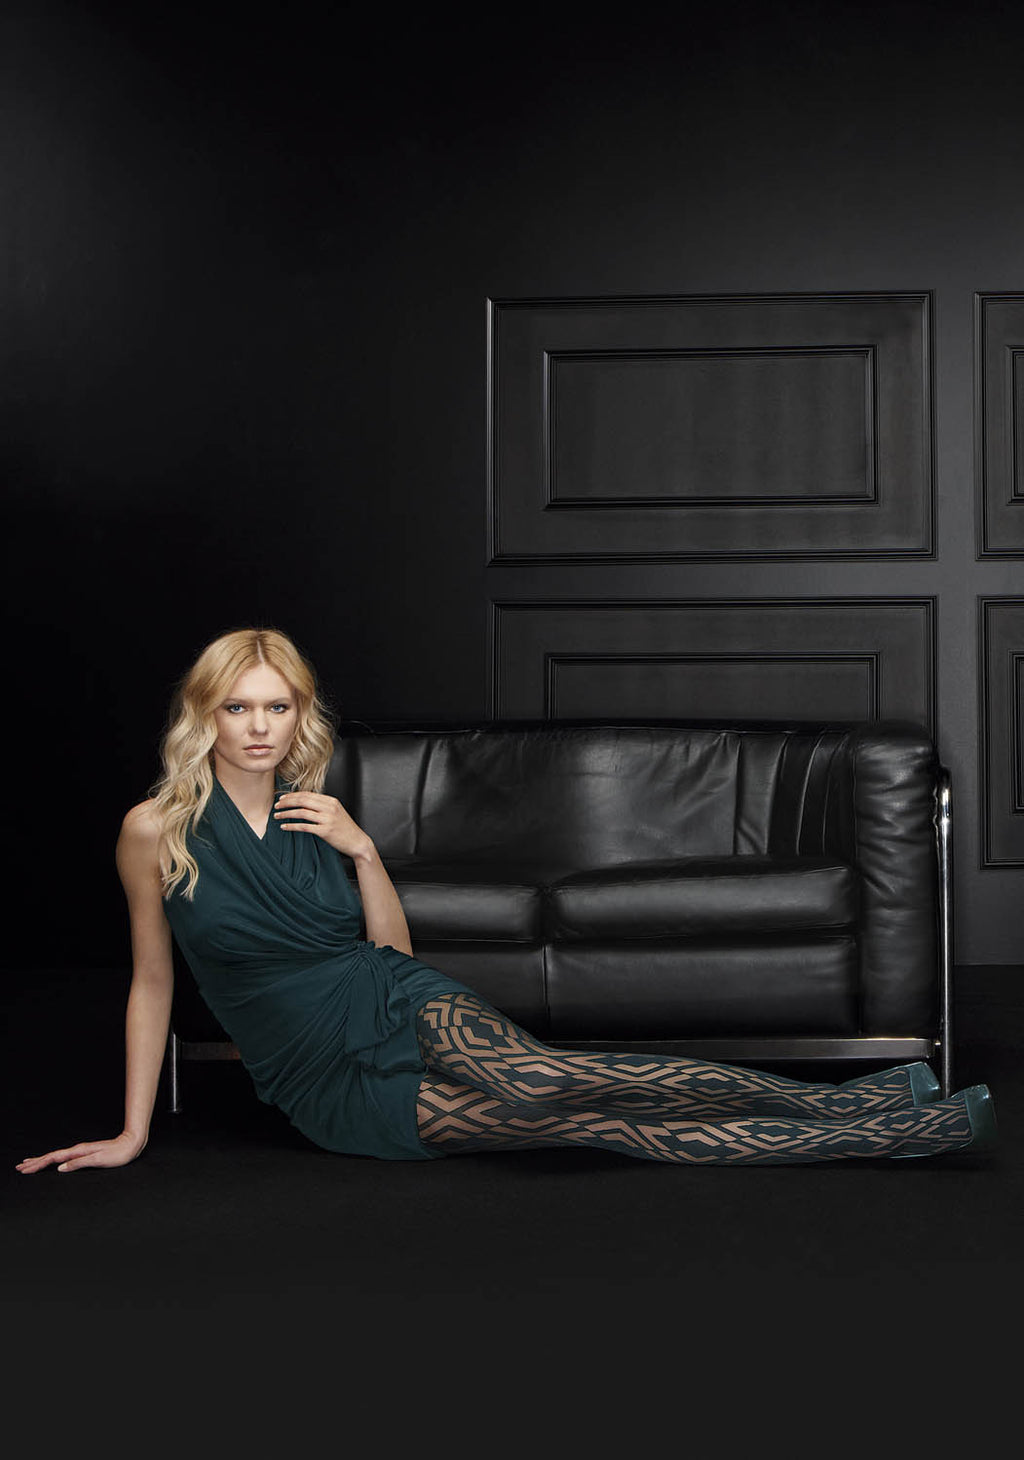 Blonde lady sitting side on with legs outstretched wearing a short green dress and green tights.